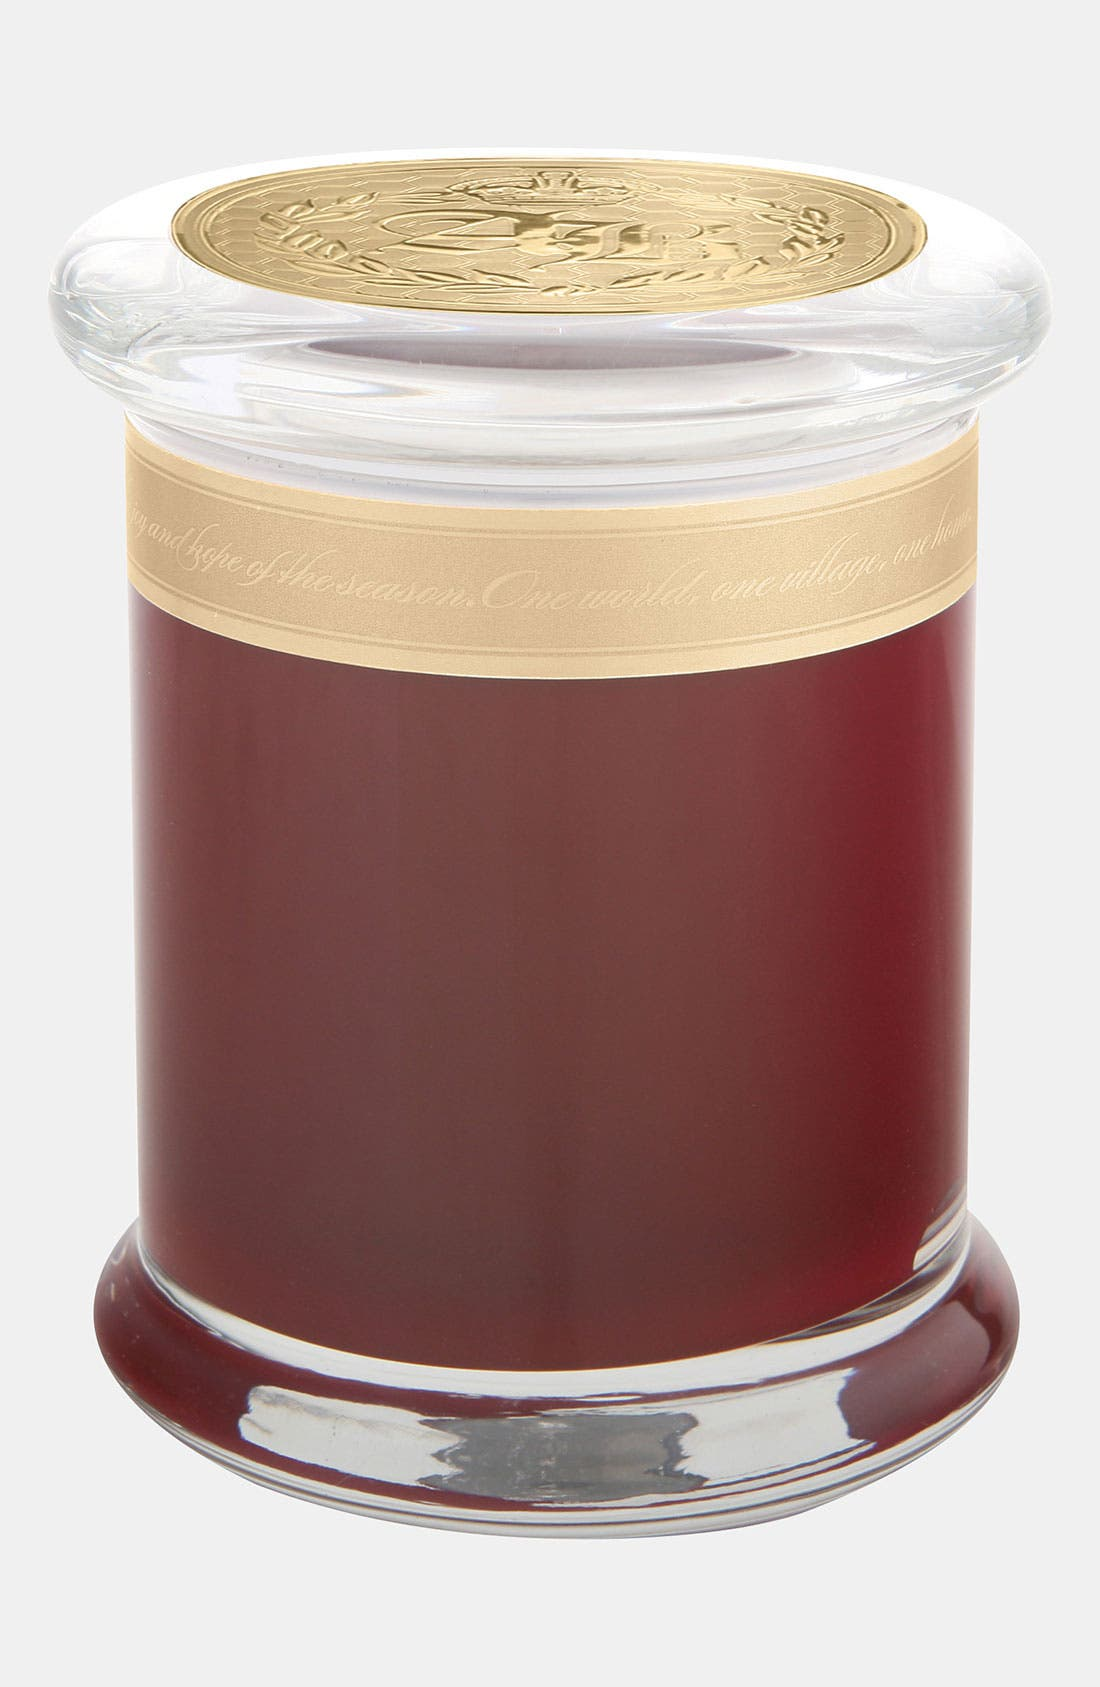 Alternate Image 1 Selected - Archipelago Botanicals 'Joy of the Season' Jar Candle